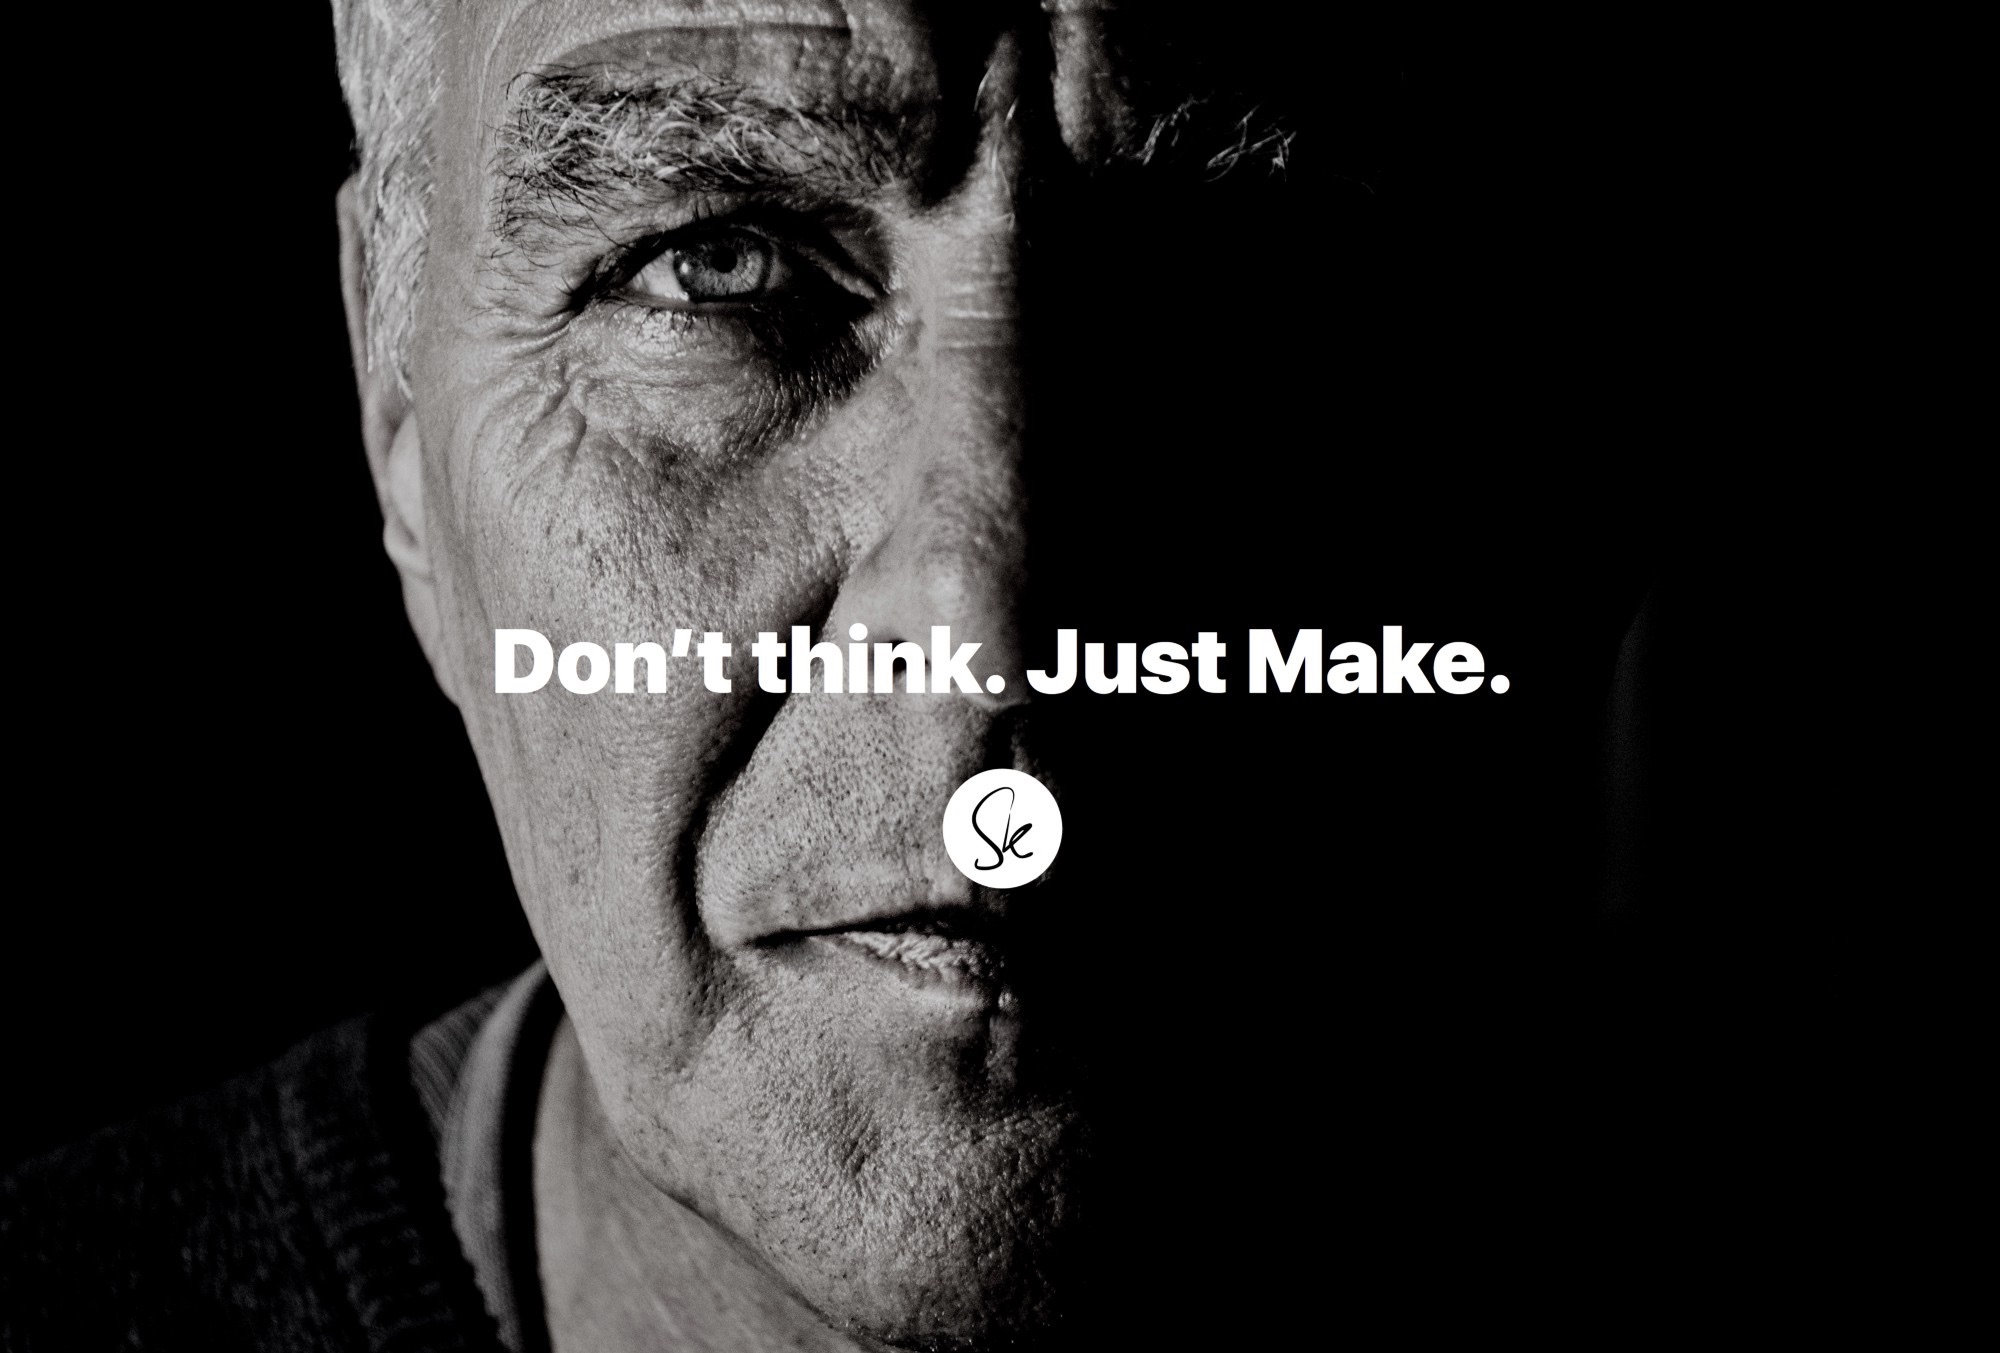 Don't think. Just make.